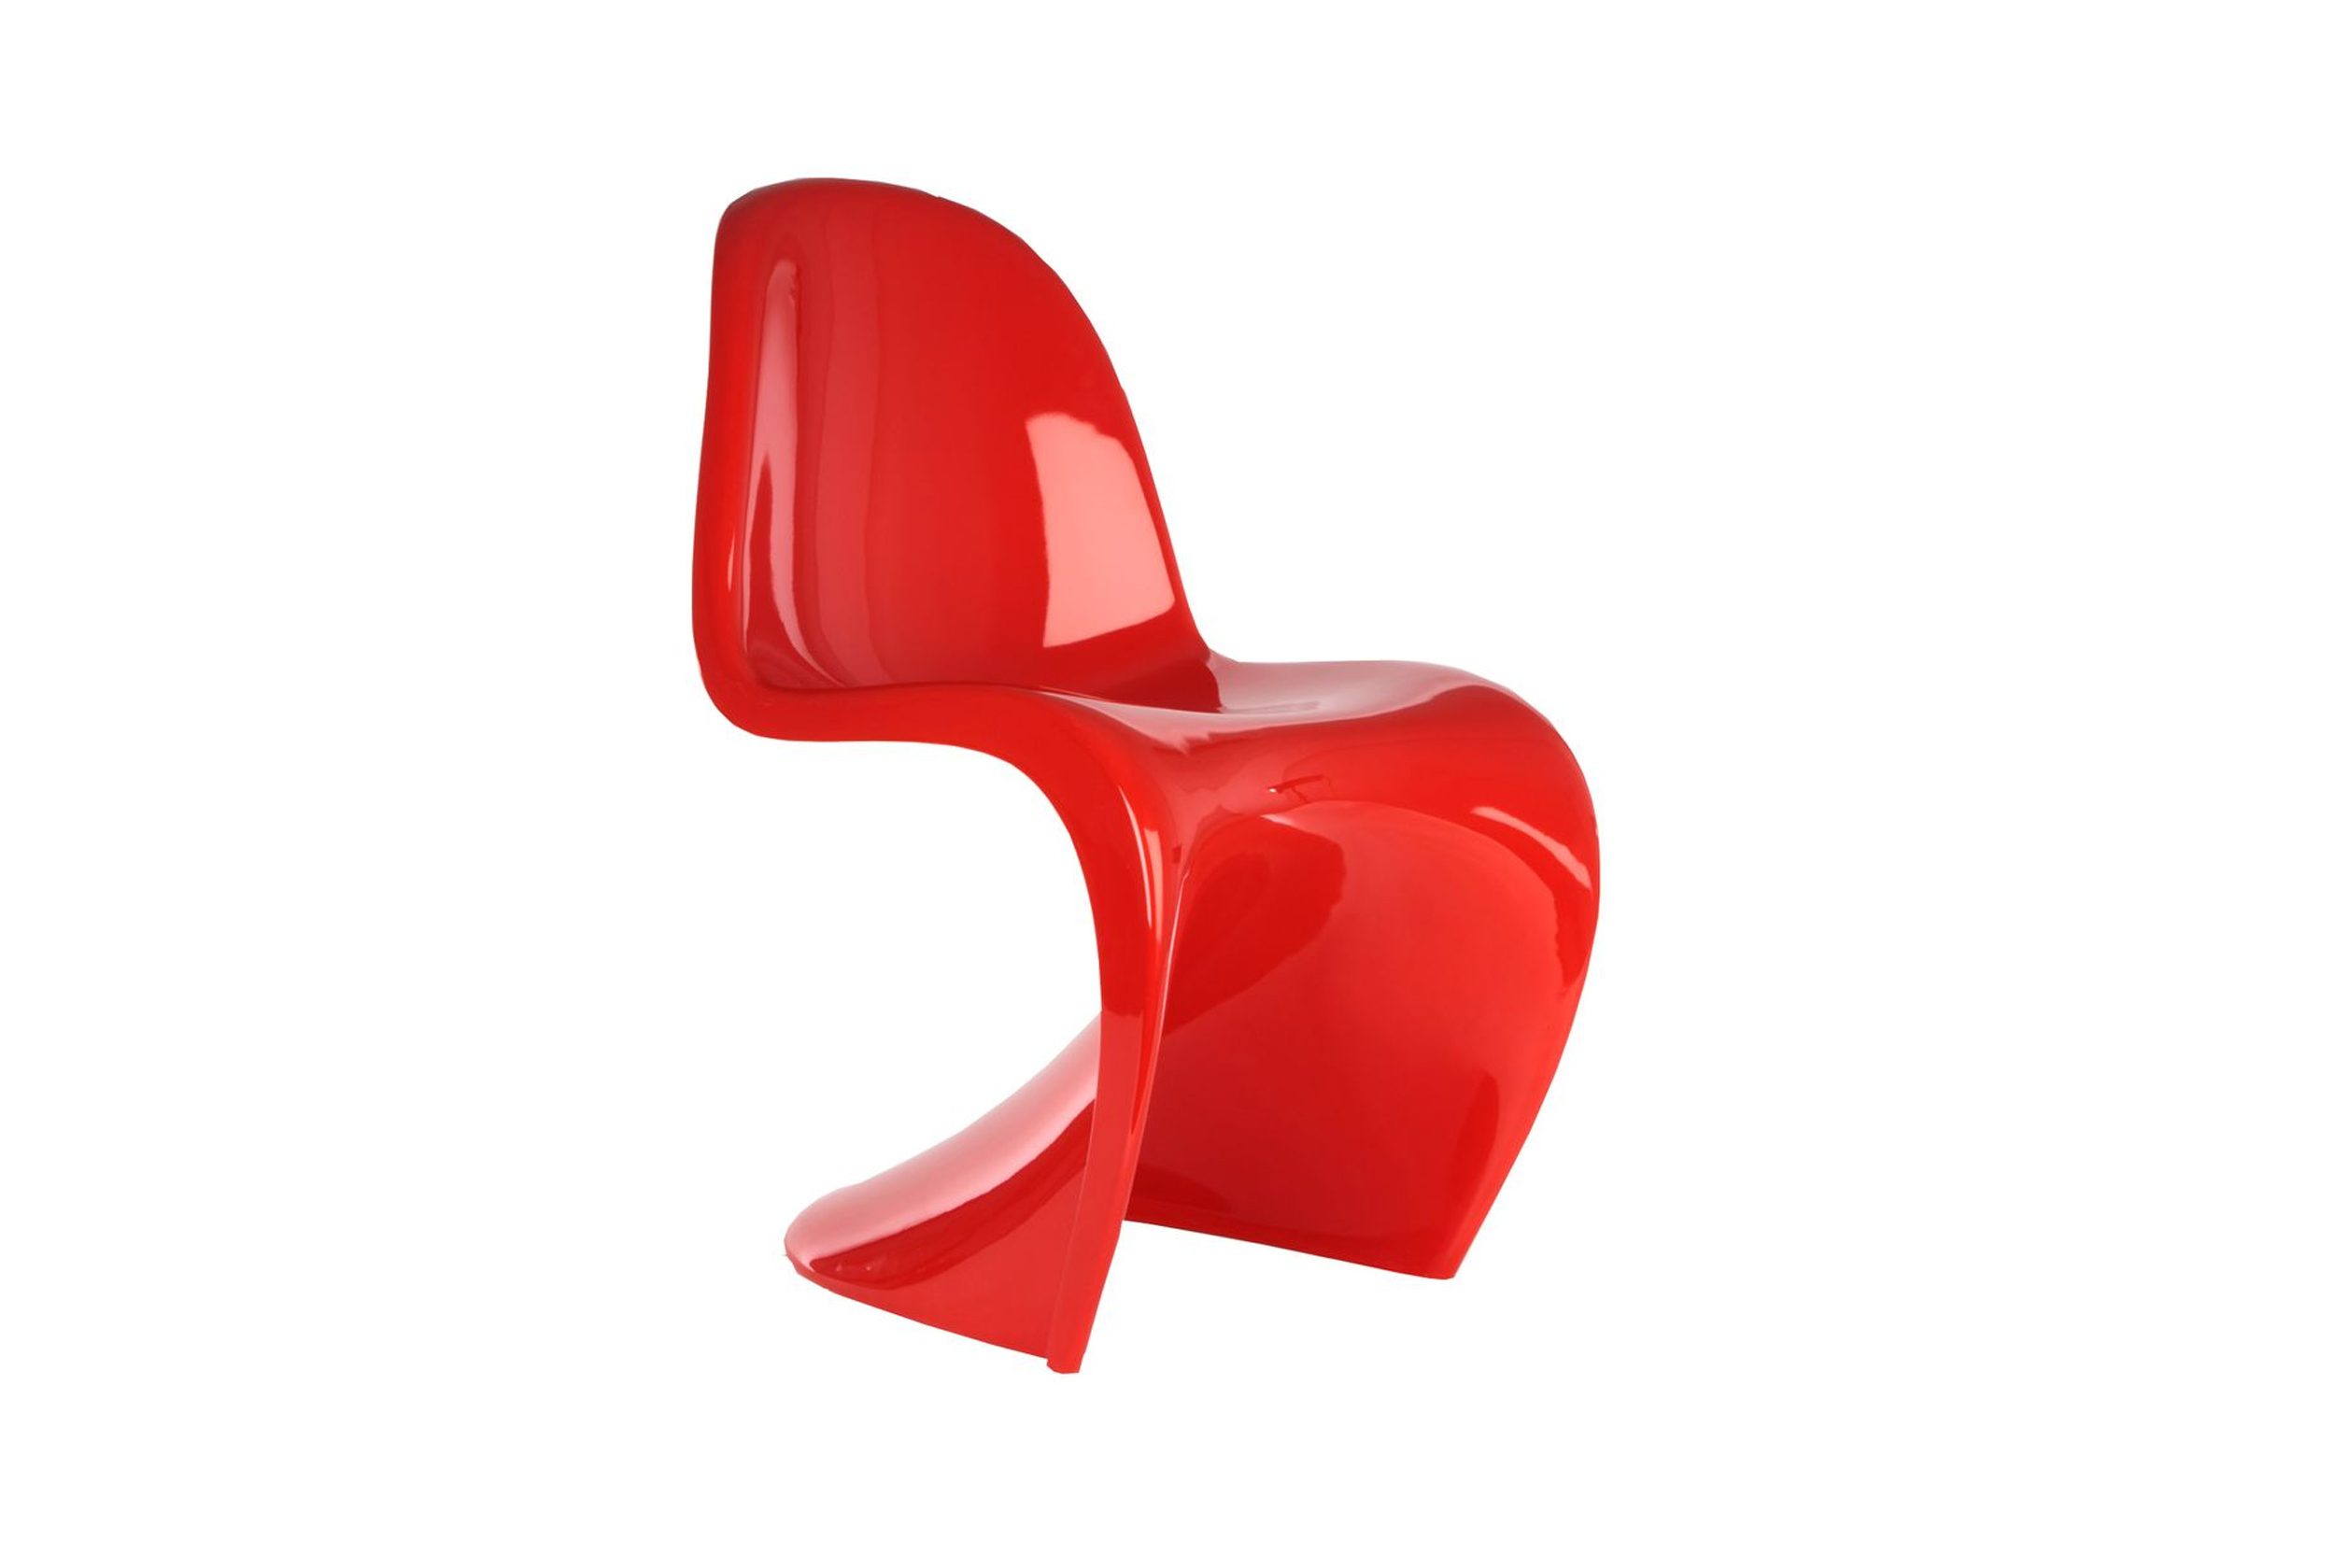 panton chair classic verner panton vitra rezzoli designer furniture. Black Bedroom Furniture Sets. Home Design Ideas